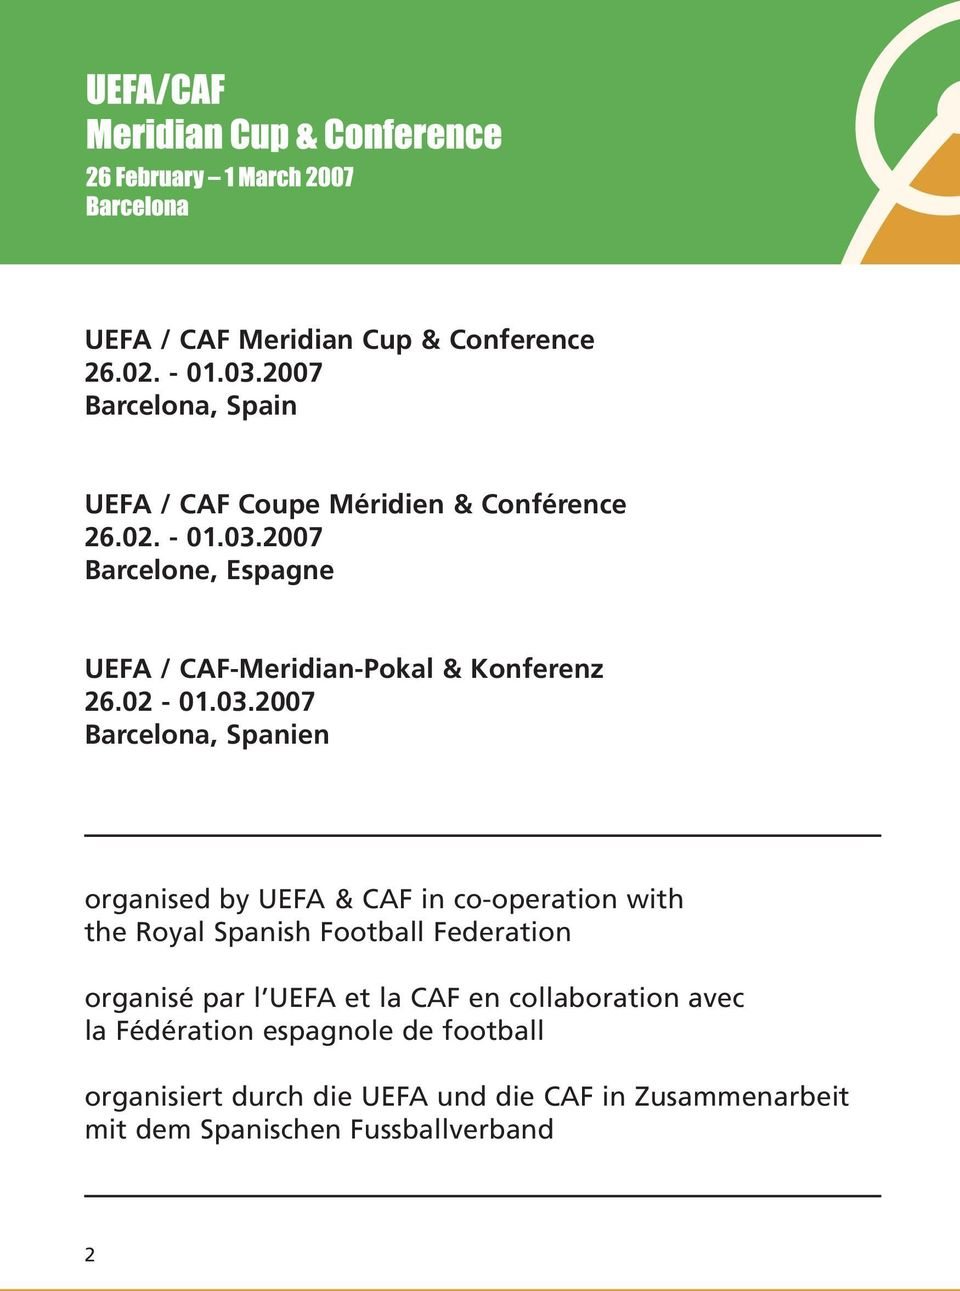 2007 Barcelona, Spanien organised by UEFA & CAF in co-operation with the Royal Spanish Football Federation organisé par l